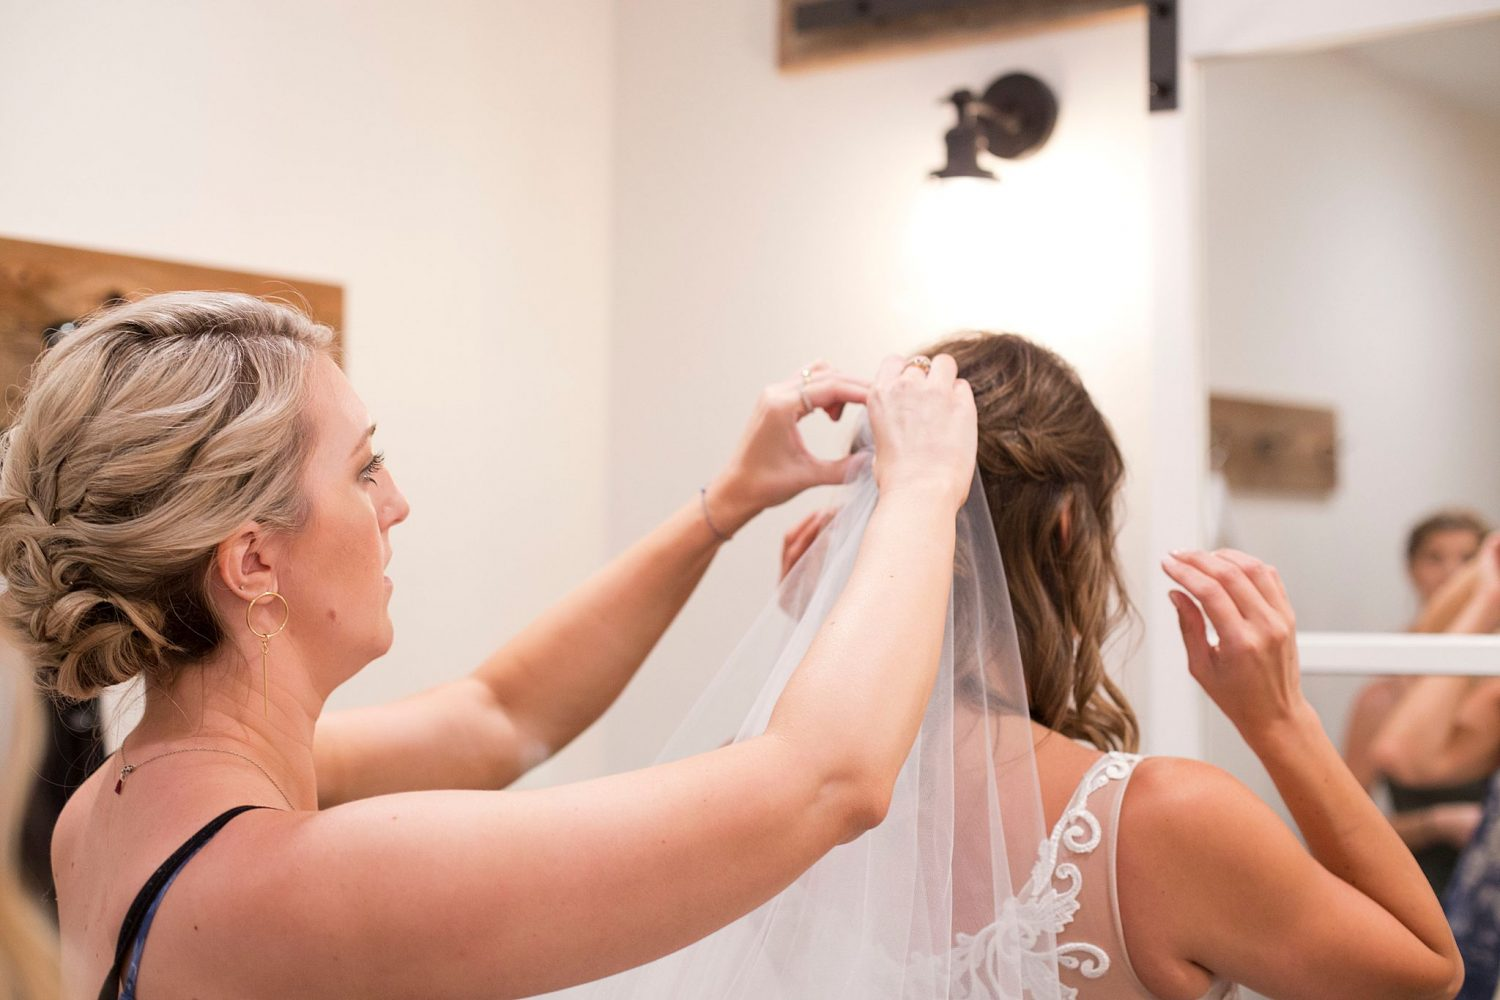 A bridesmaids puts the bride's veil on in the bridal suite of Rapid Creek Cidery